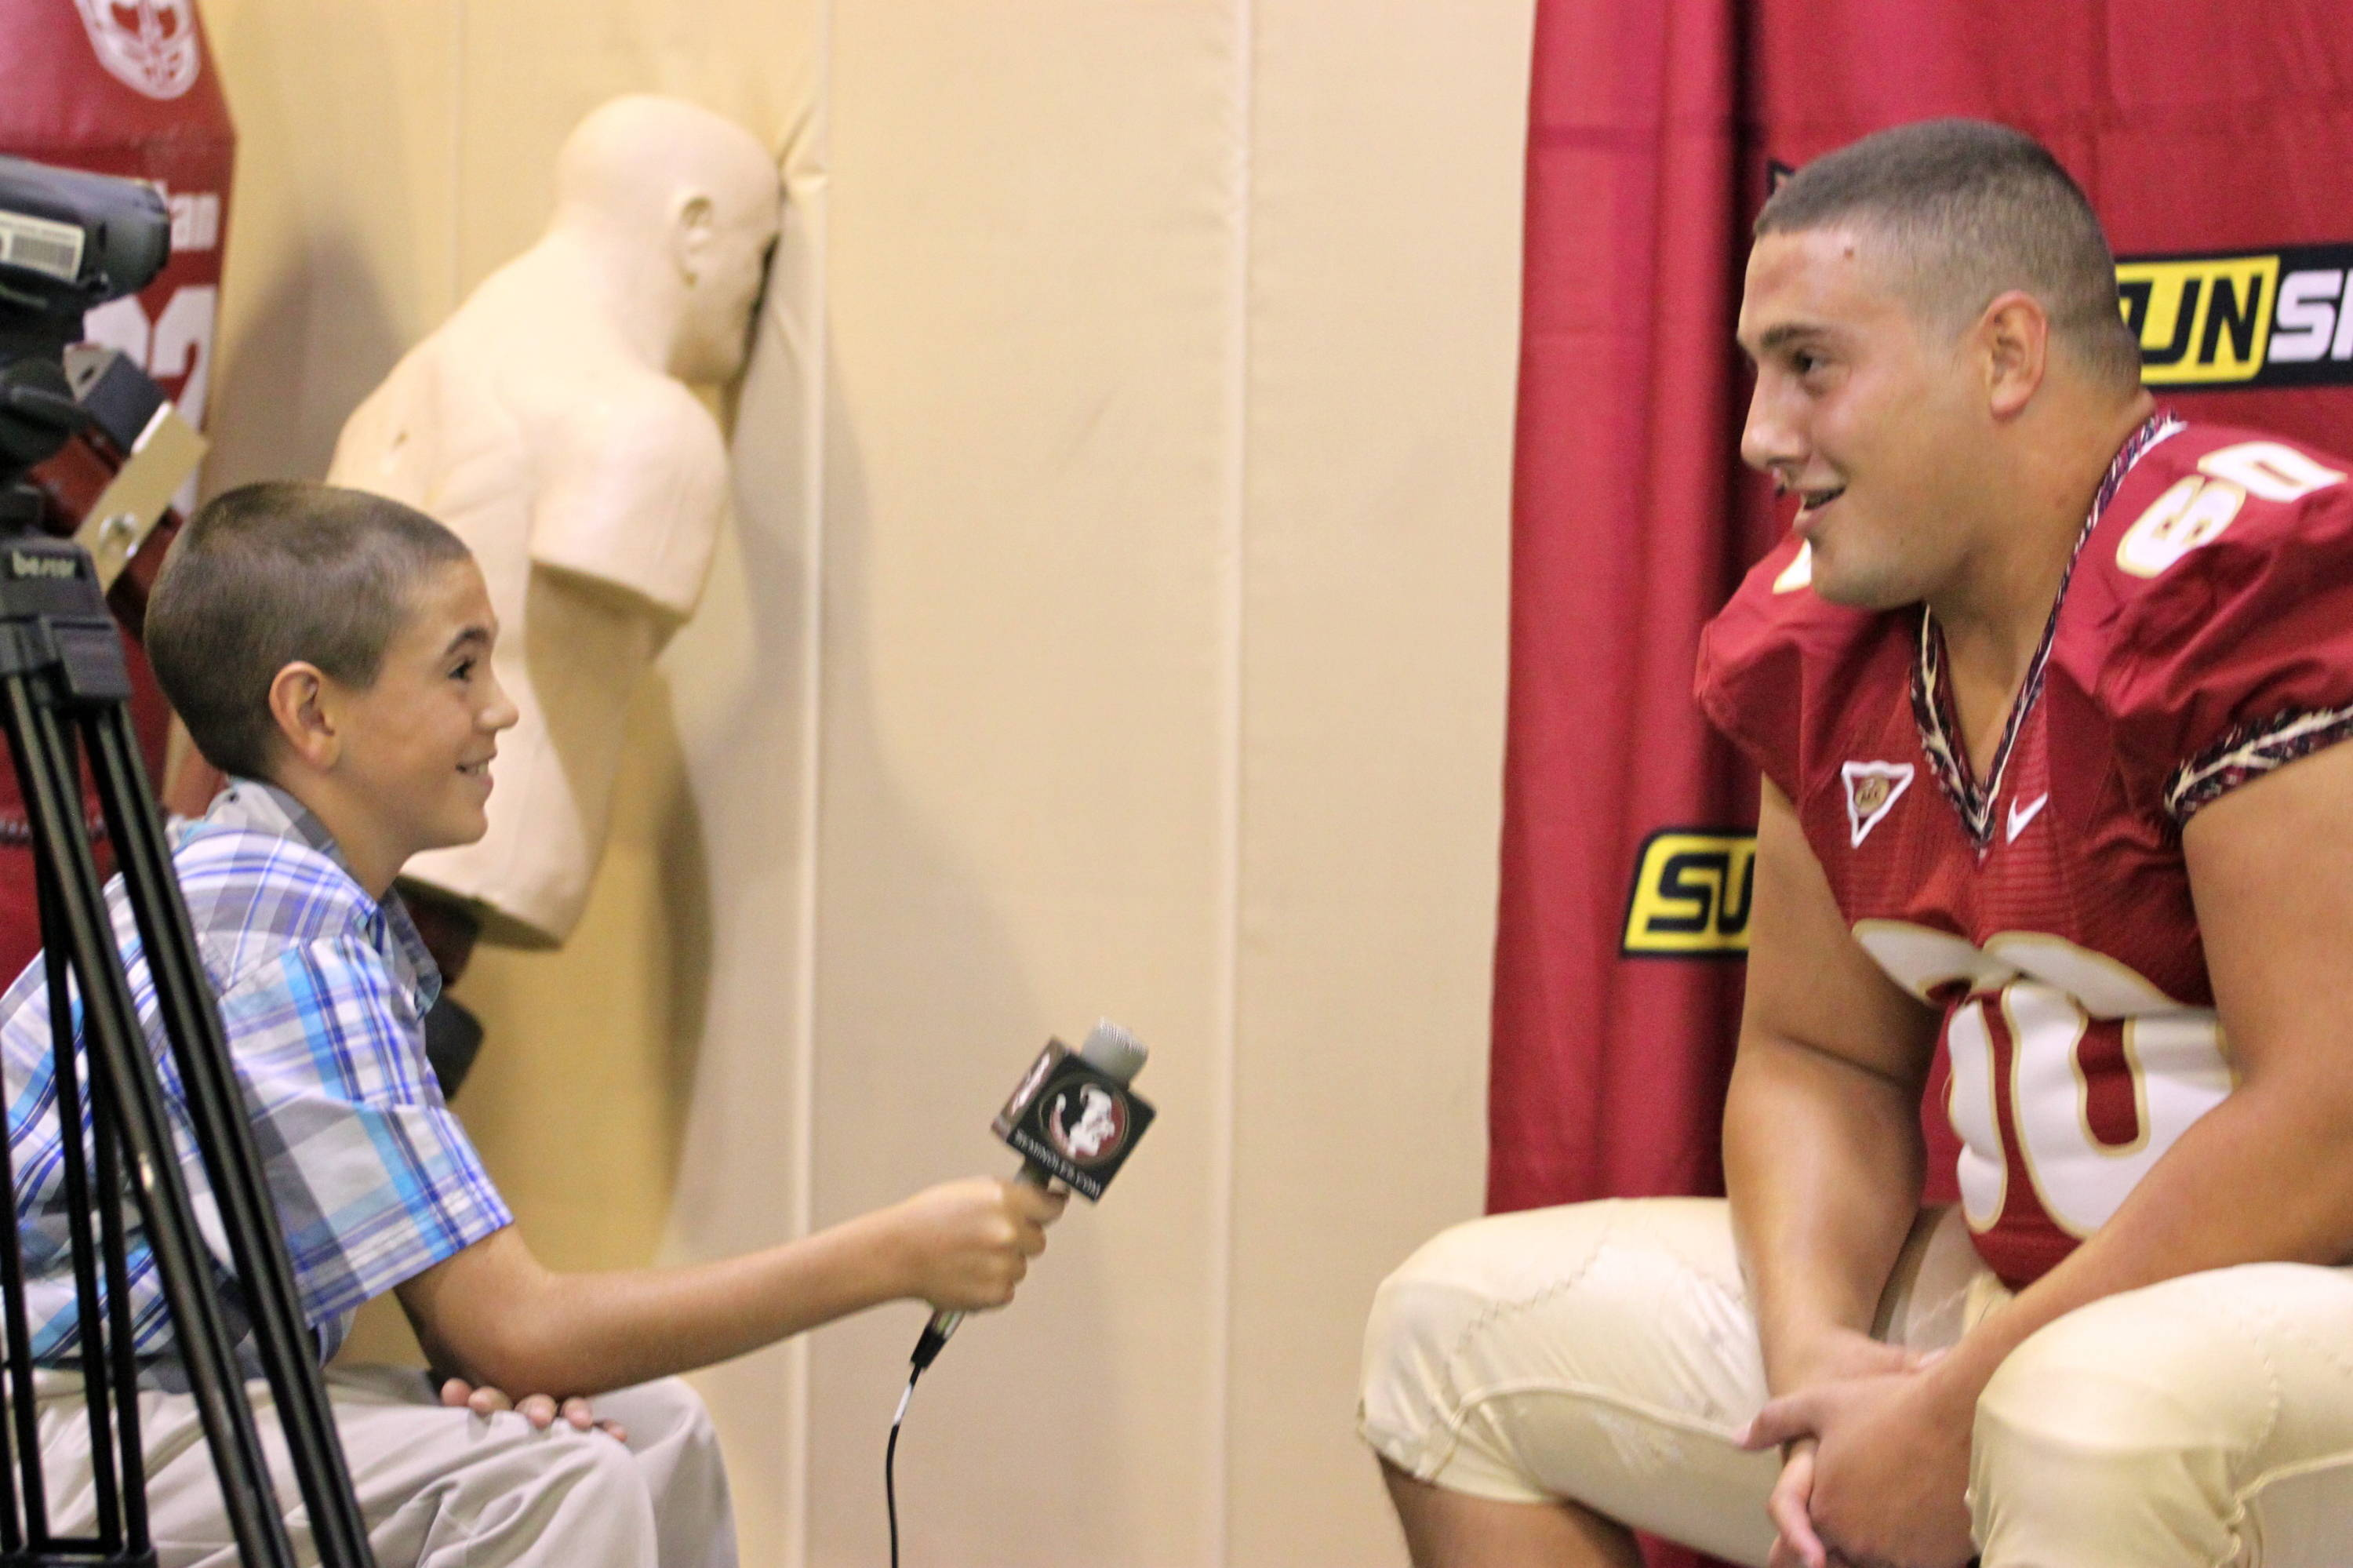 Ryan McMahon and Jr. Nole reporter Blaine Thomas at football media day.